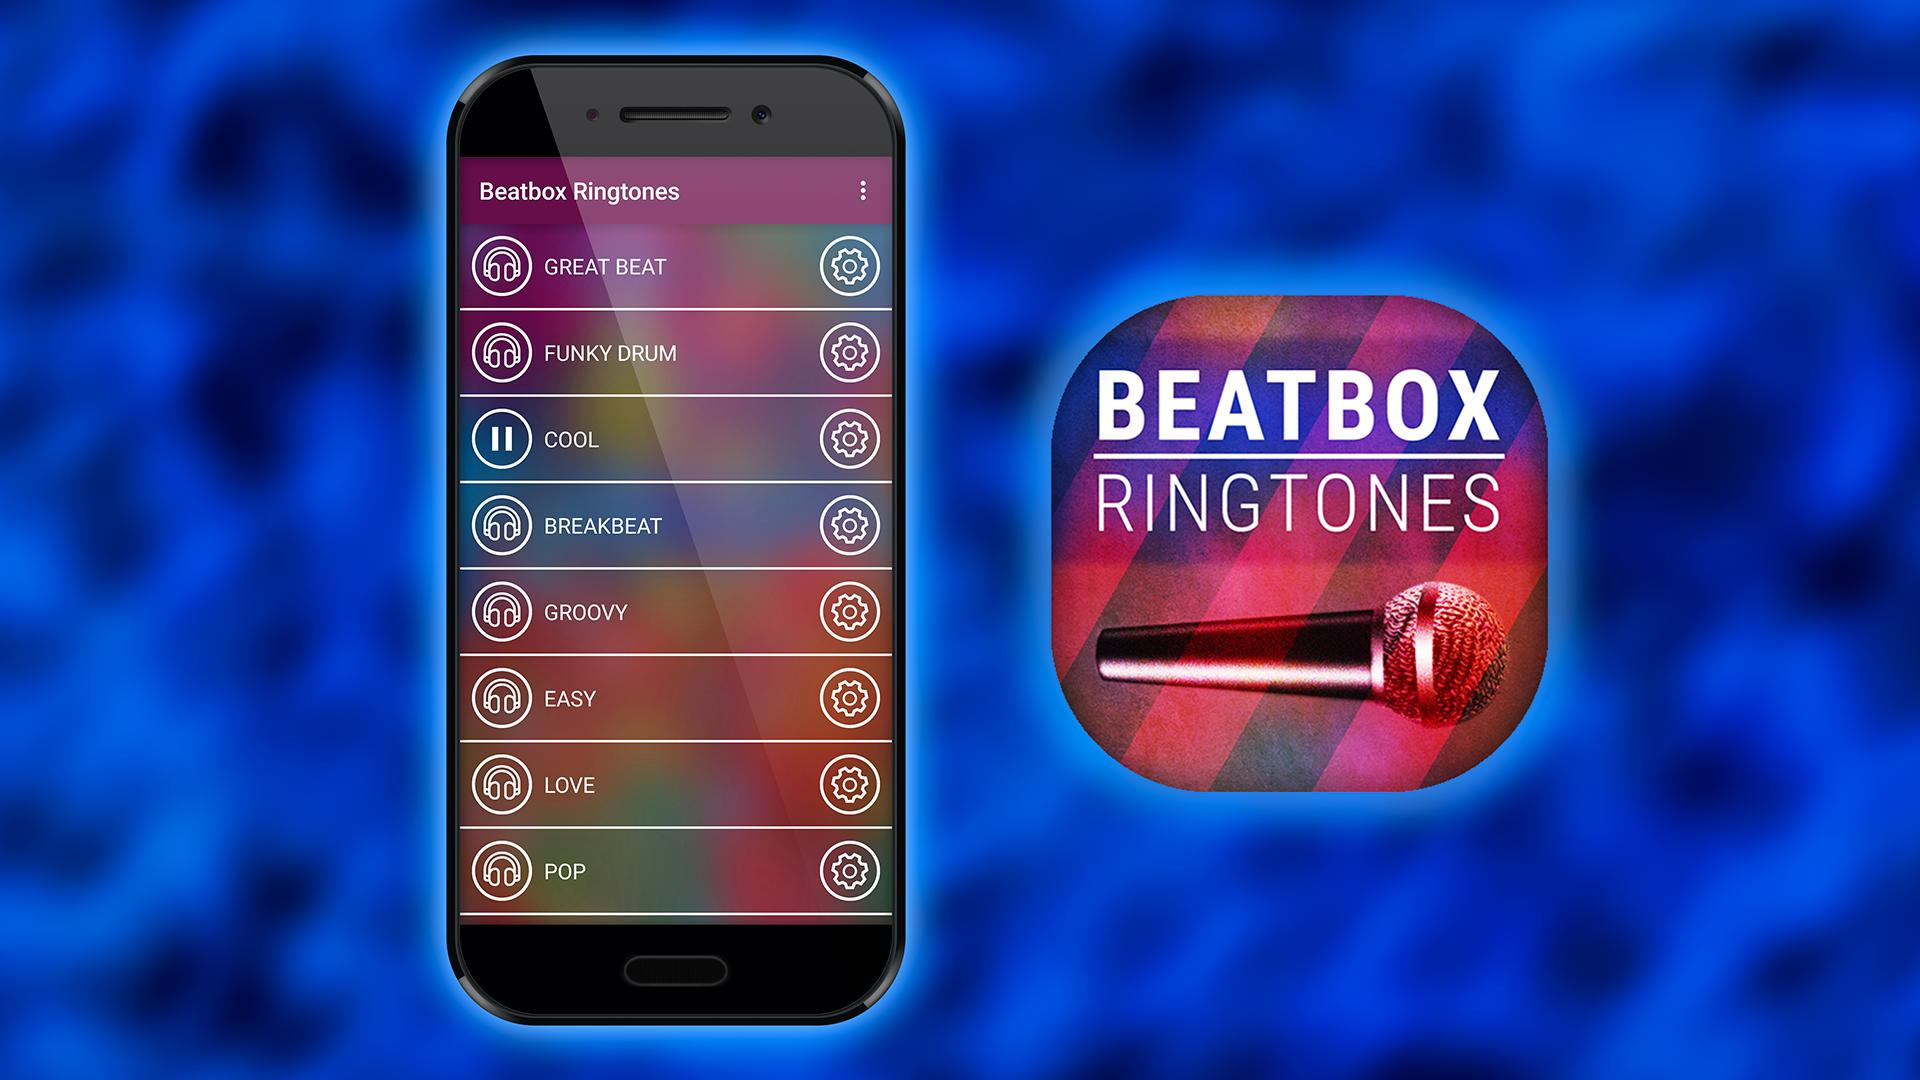 Beatbox Ringtones for Android - APK Download